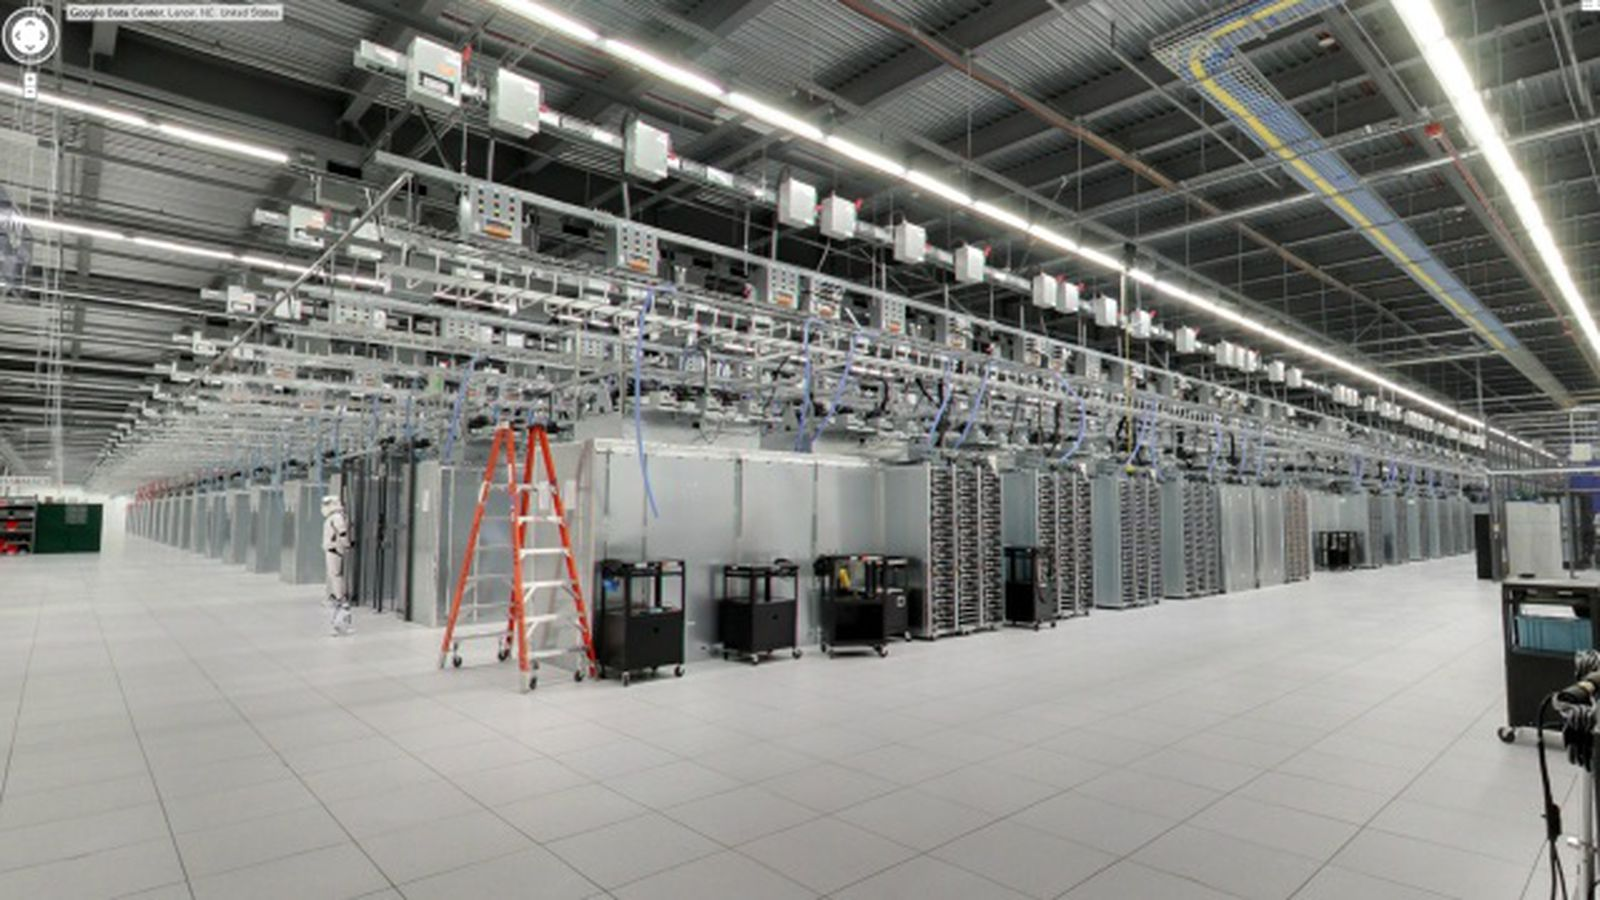 Google opens up access to data centers via Street View ...